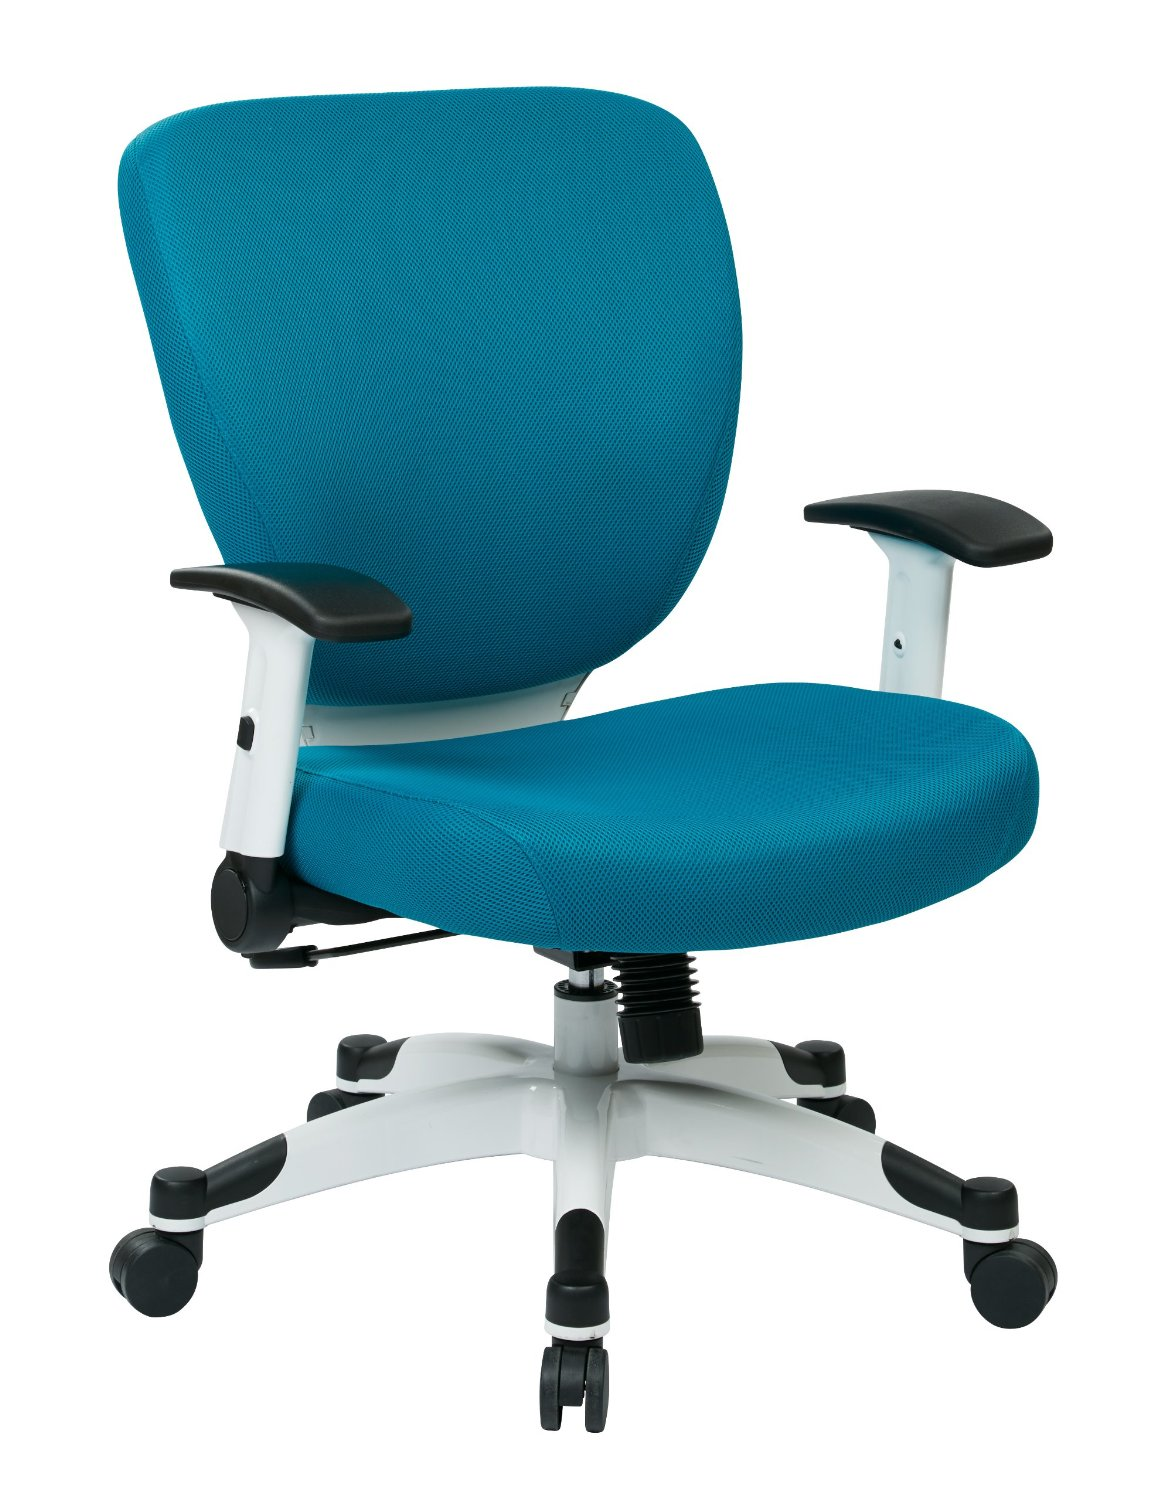 Blue Computer Chair Blue Desk Chair Office Task Chairs Chairs For Office